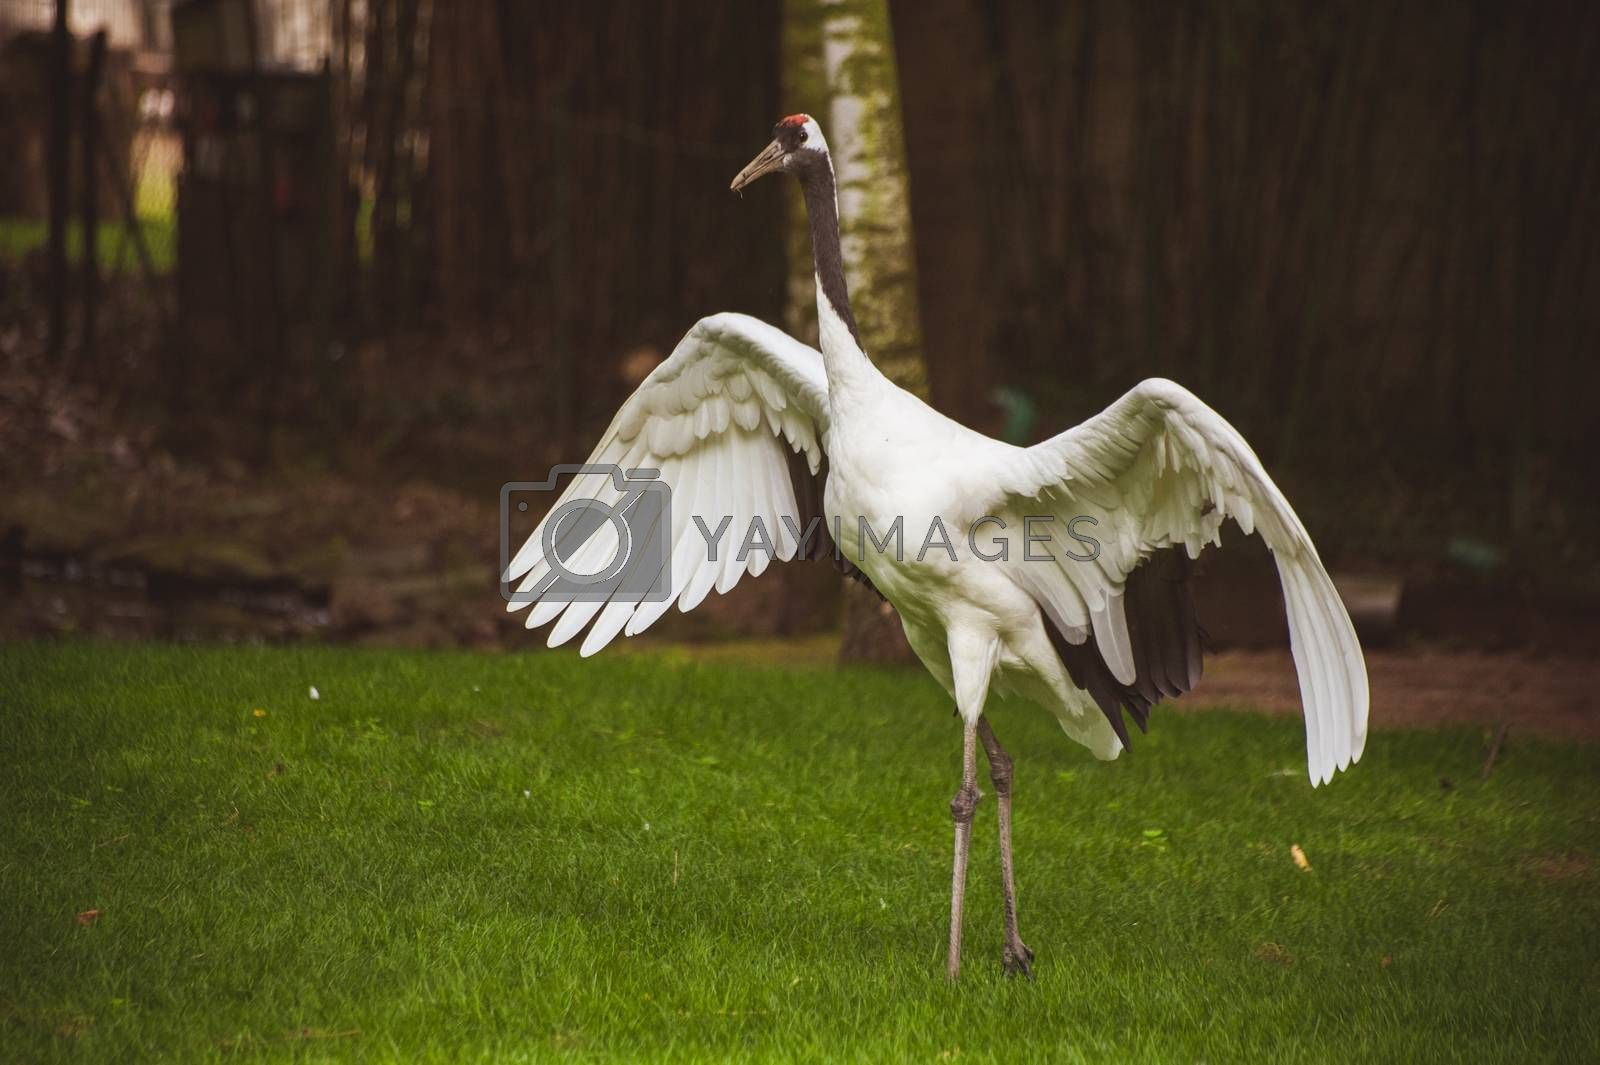 big stork bird with wide open wings